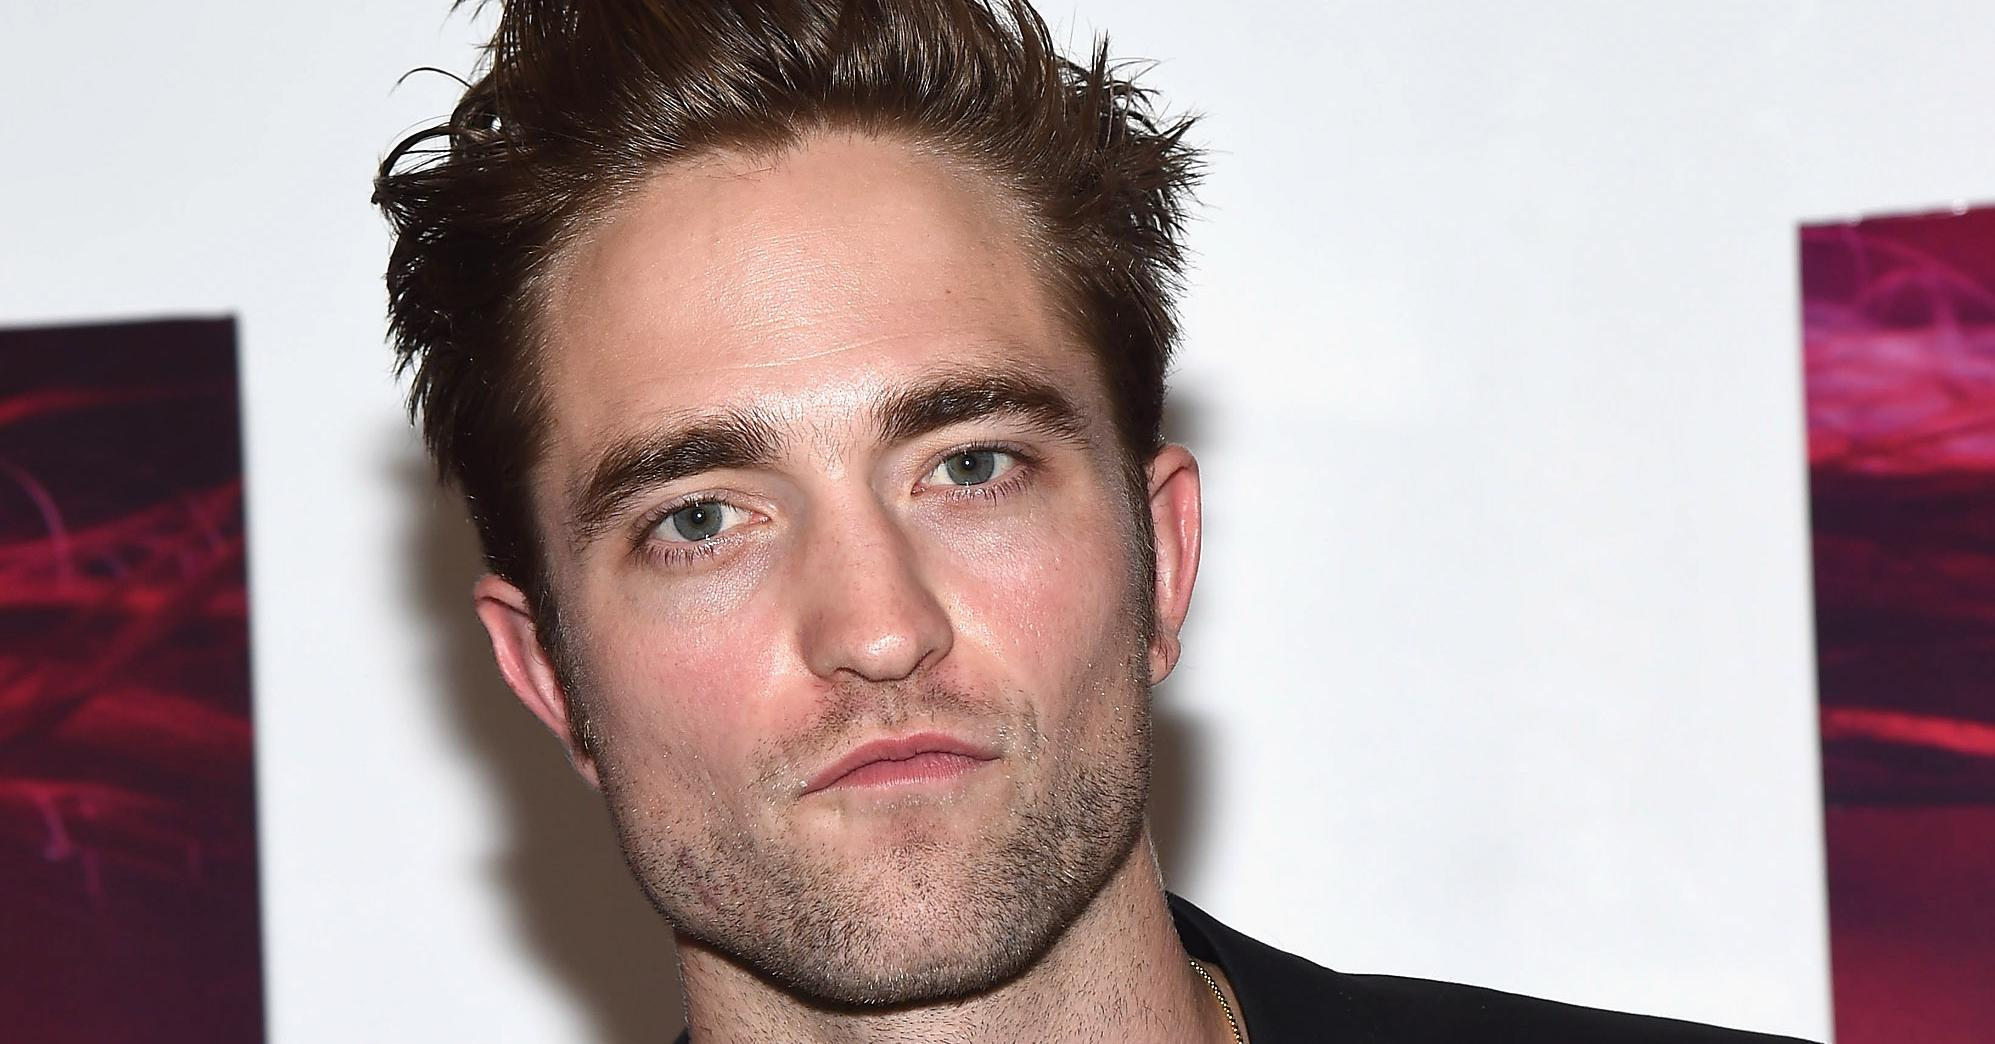 Newly Engaged Robert Pattinson Ignores Pinterest, Crashes Weddings For Inspiration: http://t.co/7koviVT35b http://t.co/muenEJR9Ql